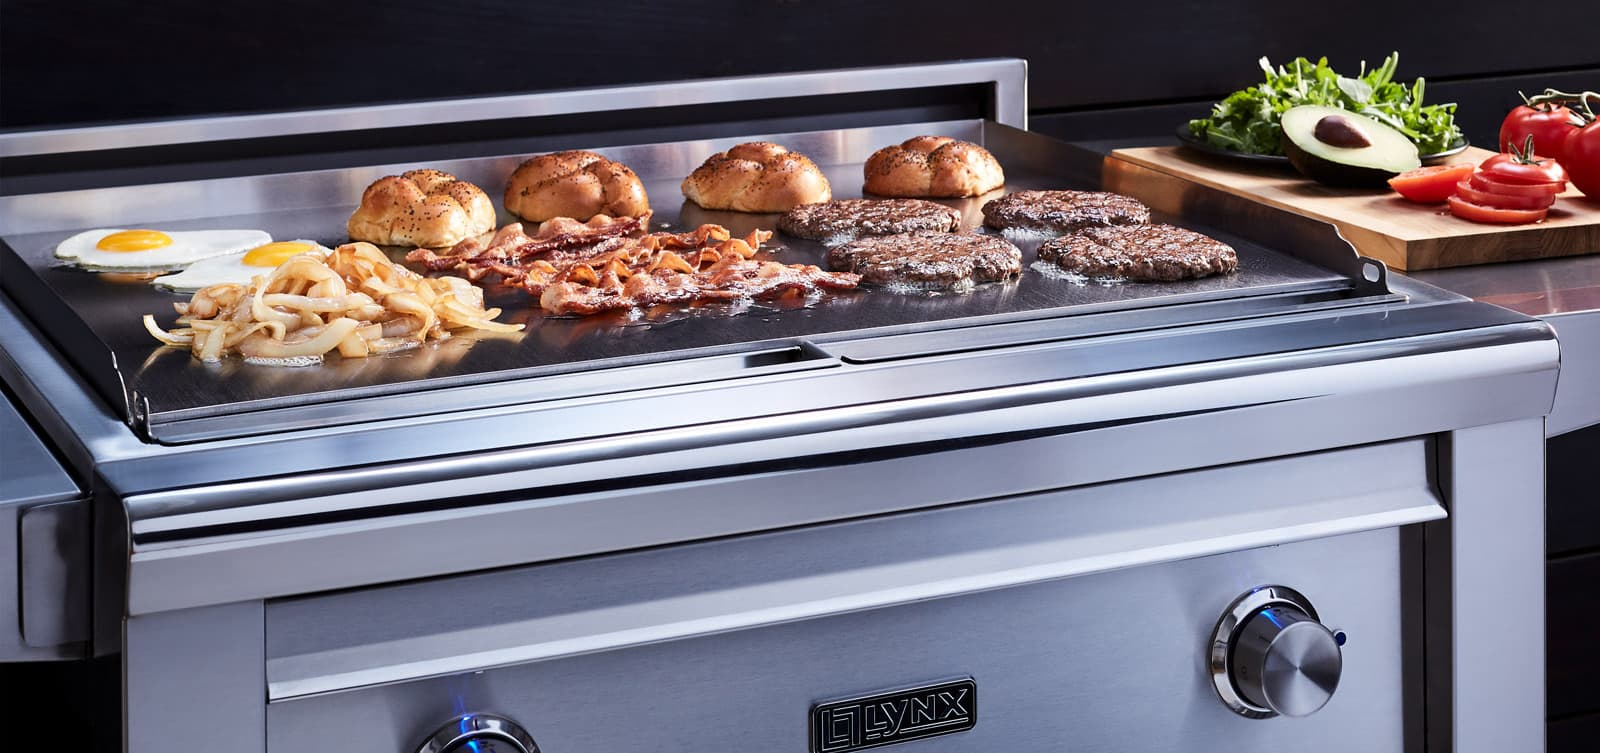 flat-top grill | outdoor kitchen appliances